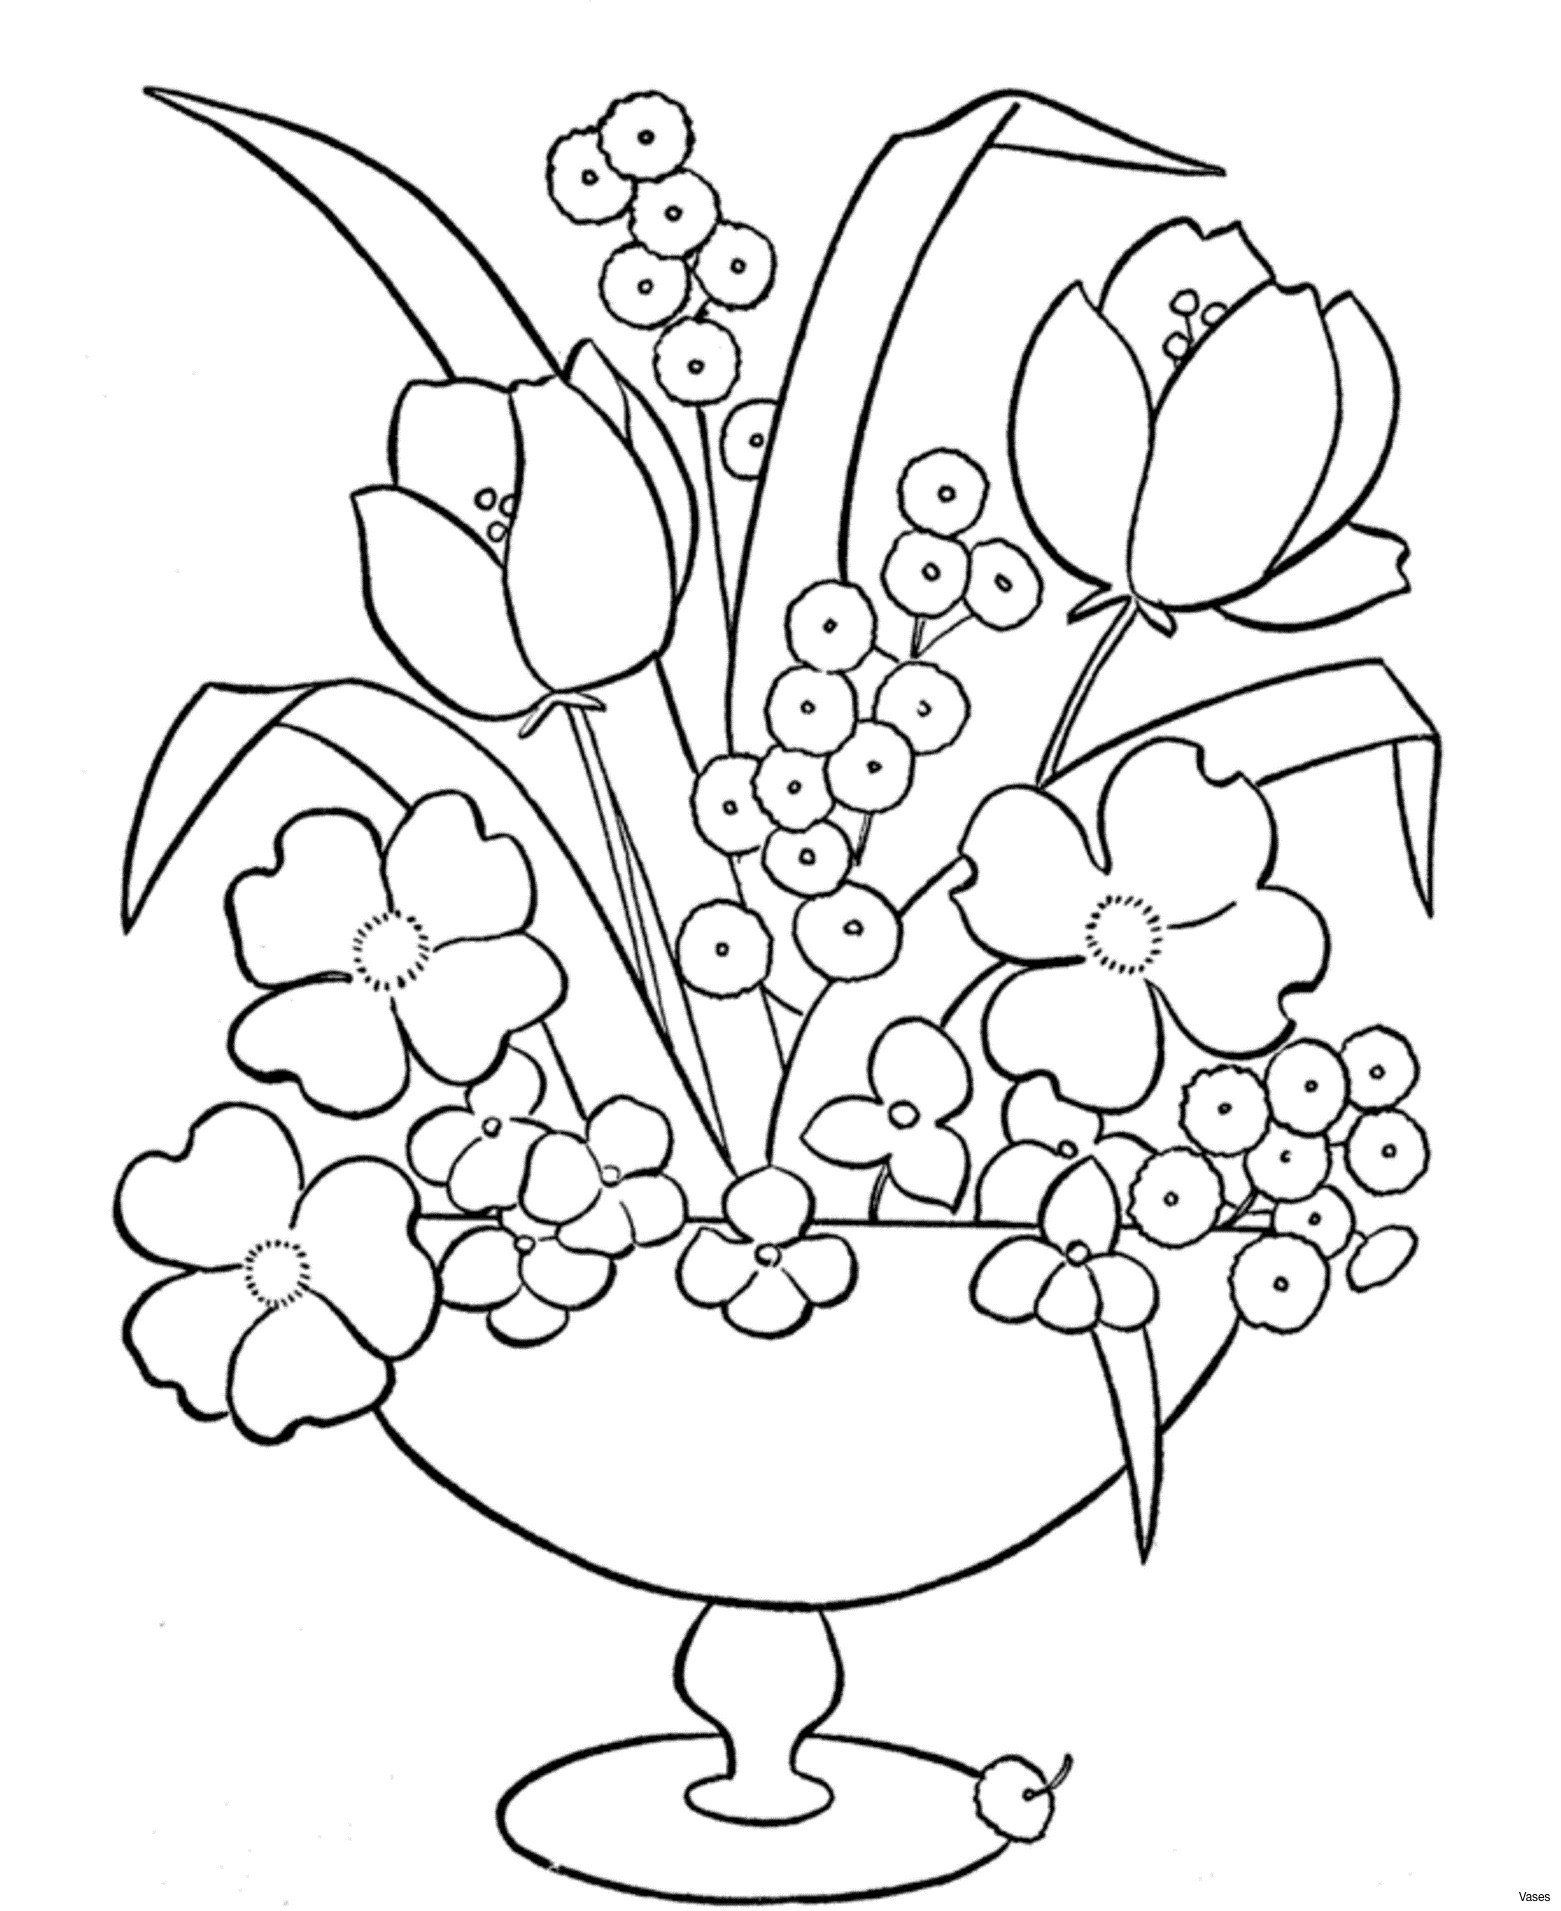 Coloring Book for Me Unique Best Detailed Flower Coloring ...